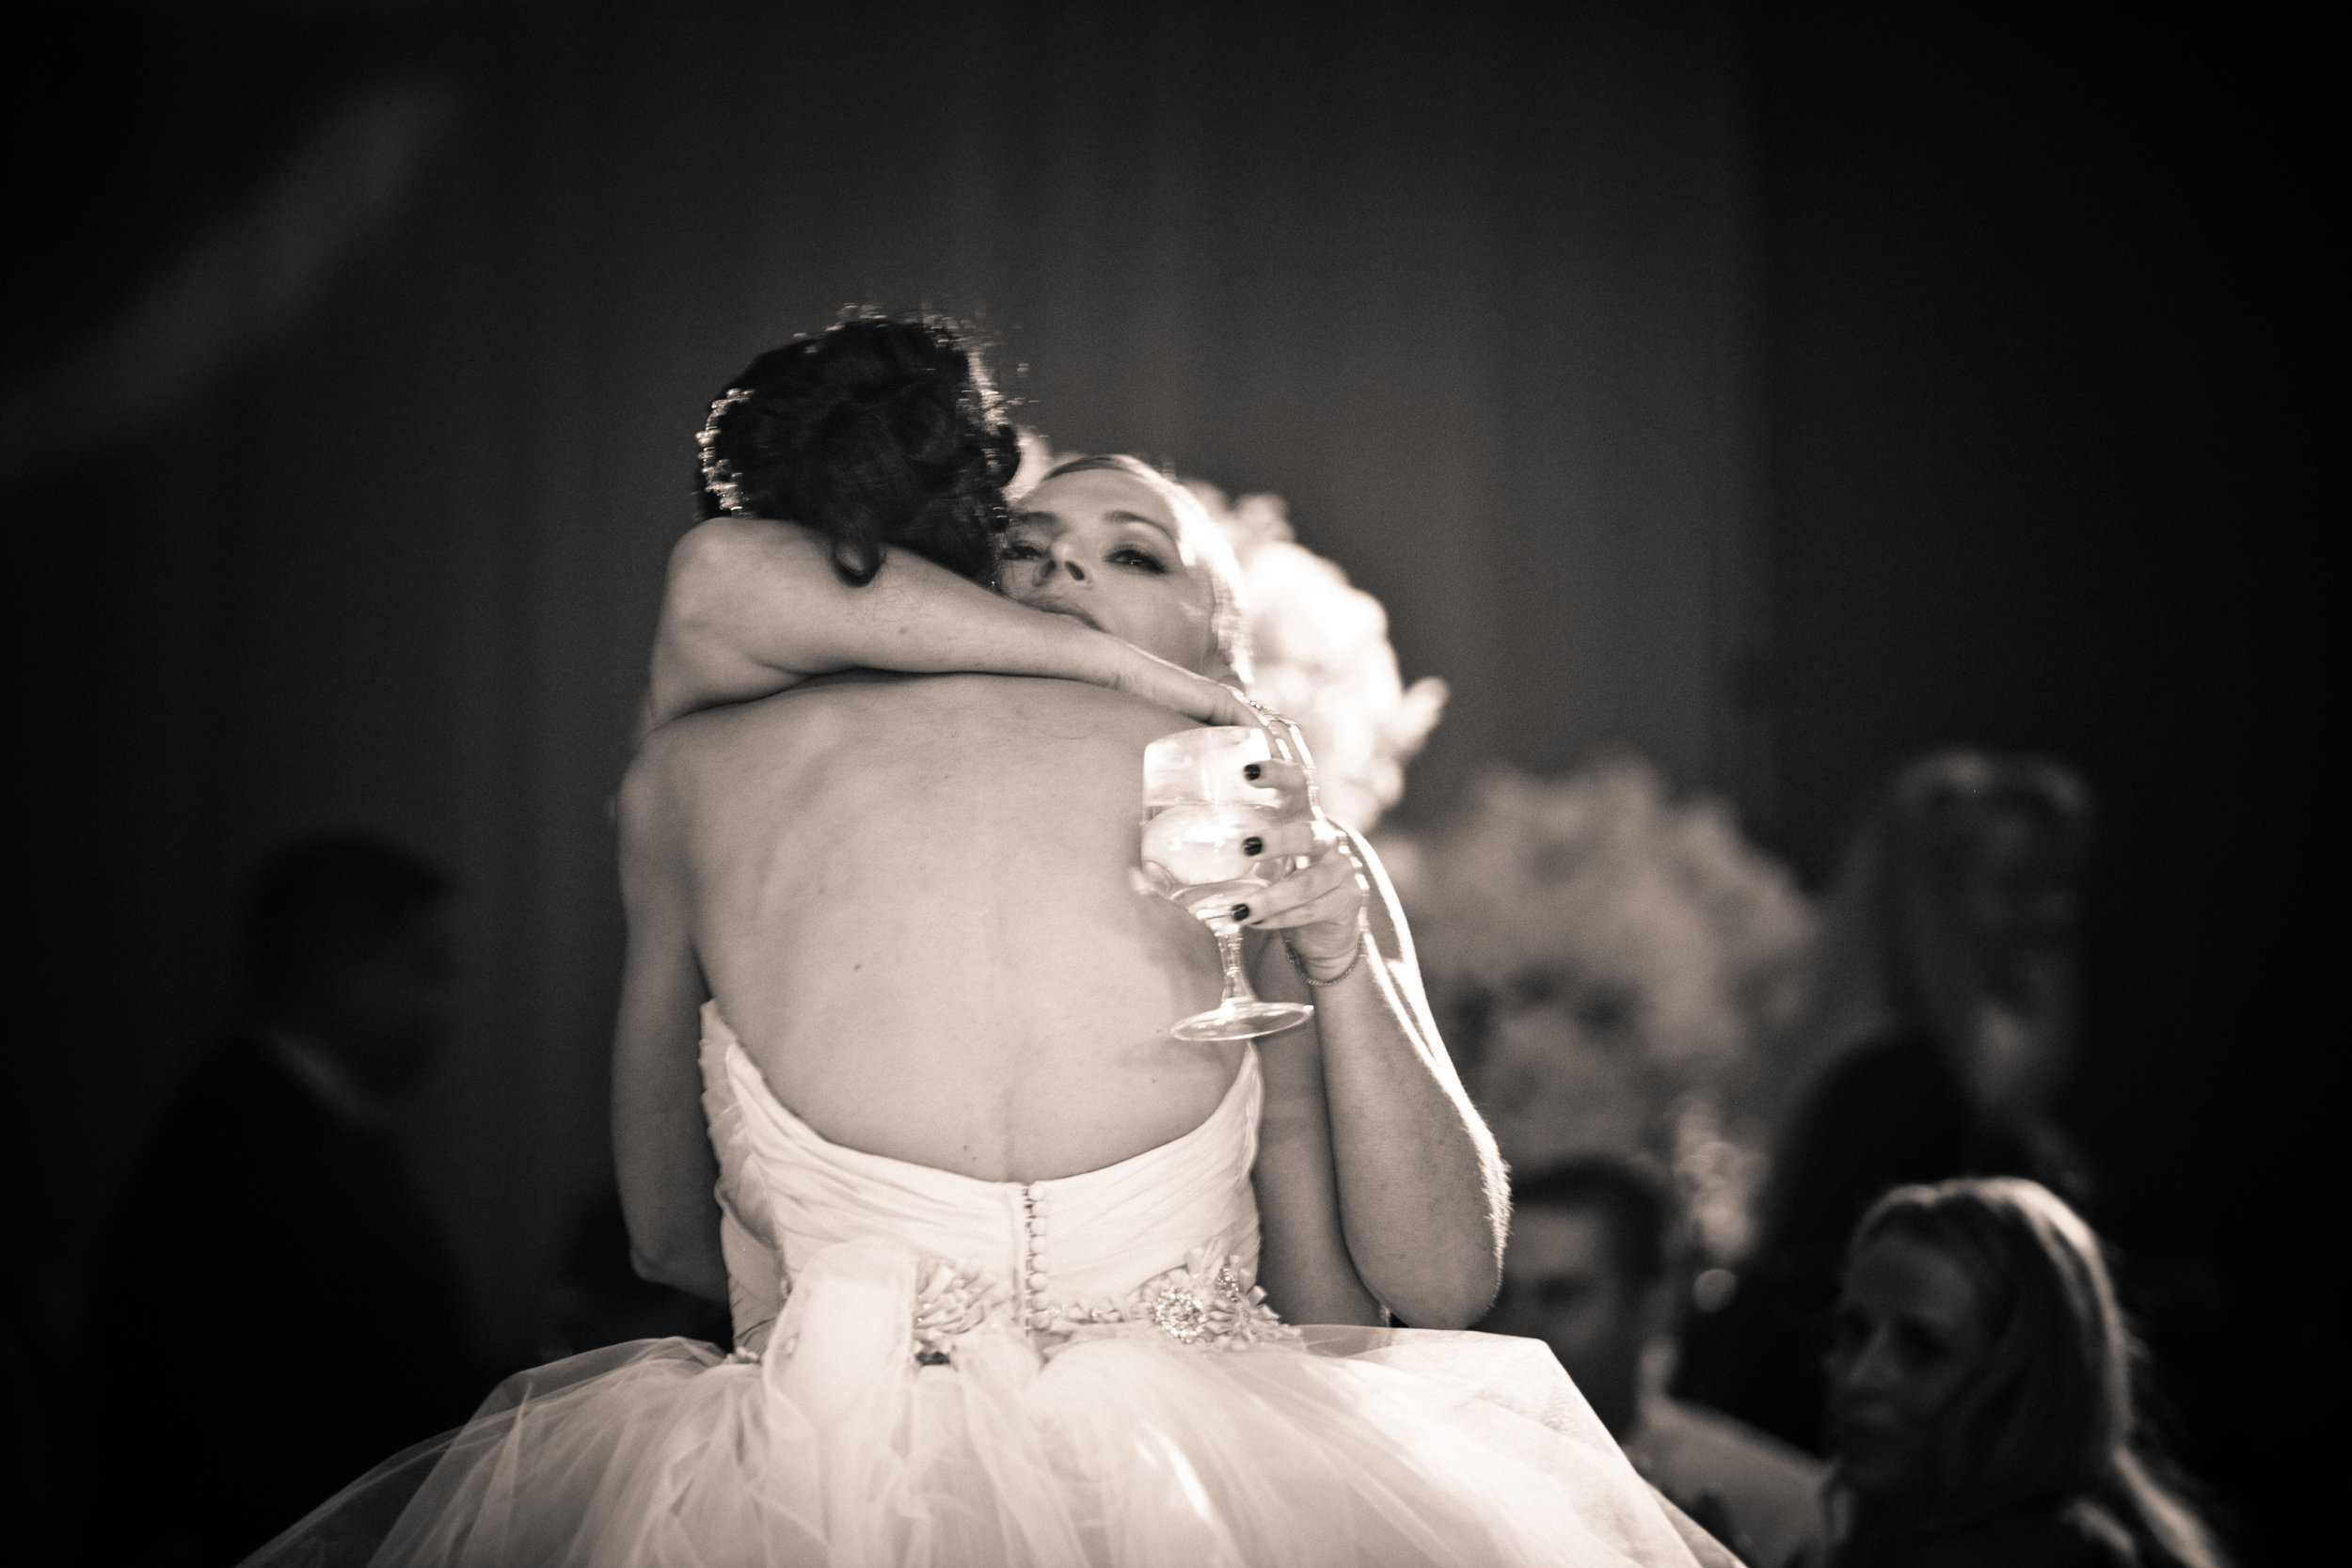 43 bride with guest bride on dance floor candid photo of bride Christine Johnson Photography Life Design Events.jpg